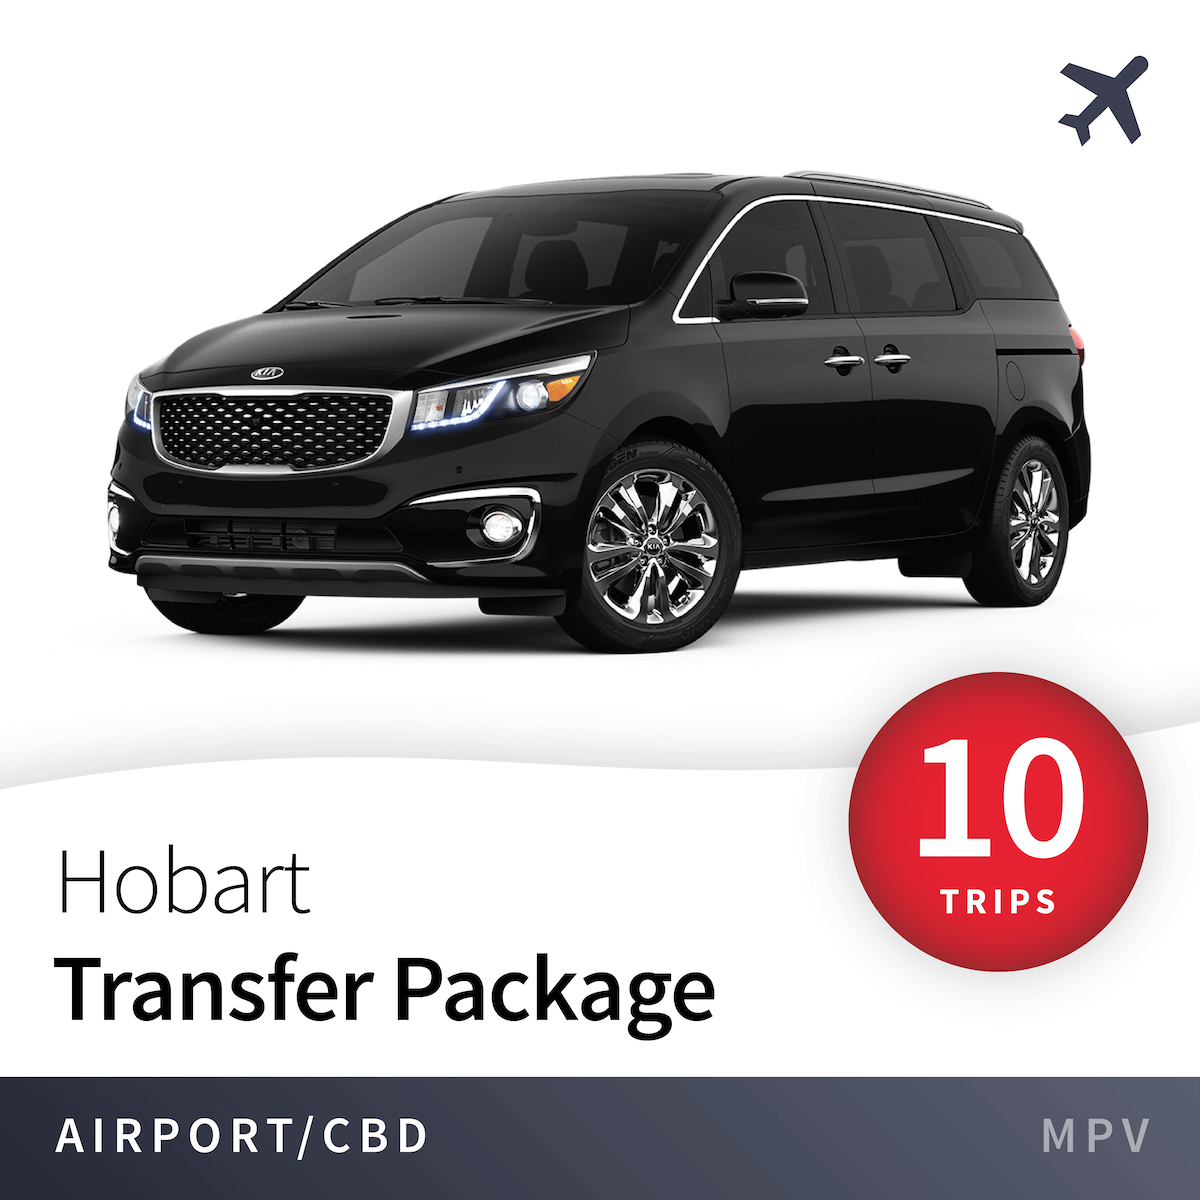 Hobart Airport Transfer Package - MPV (10 Trips) 3